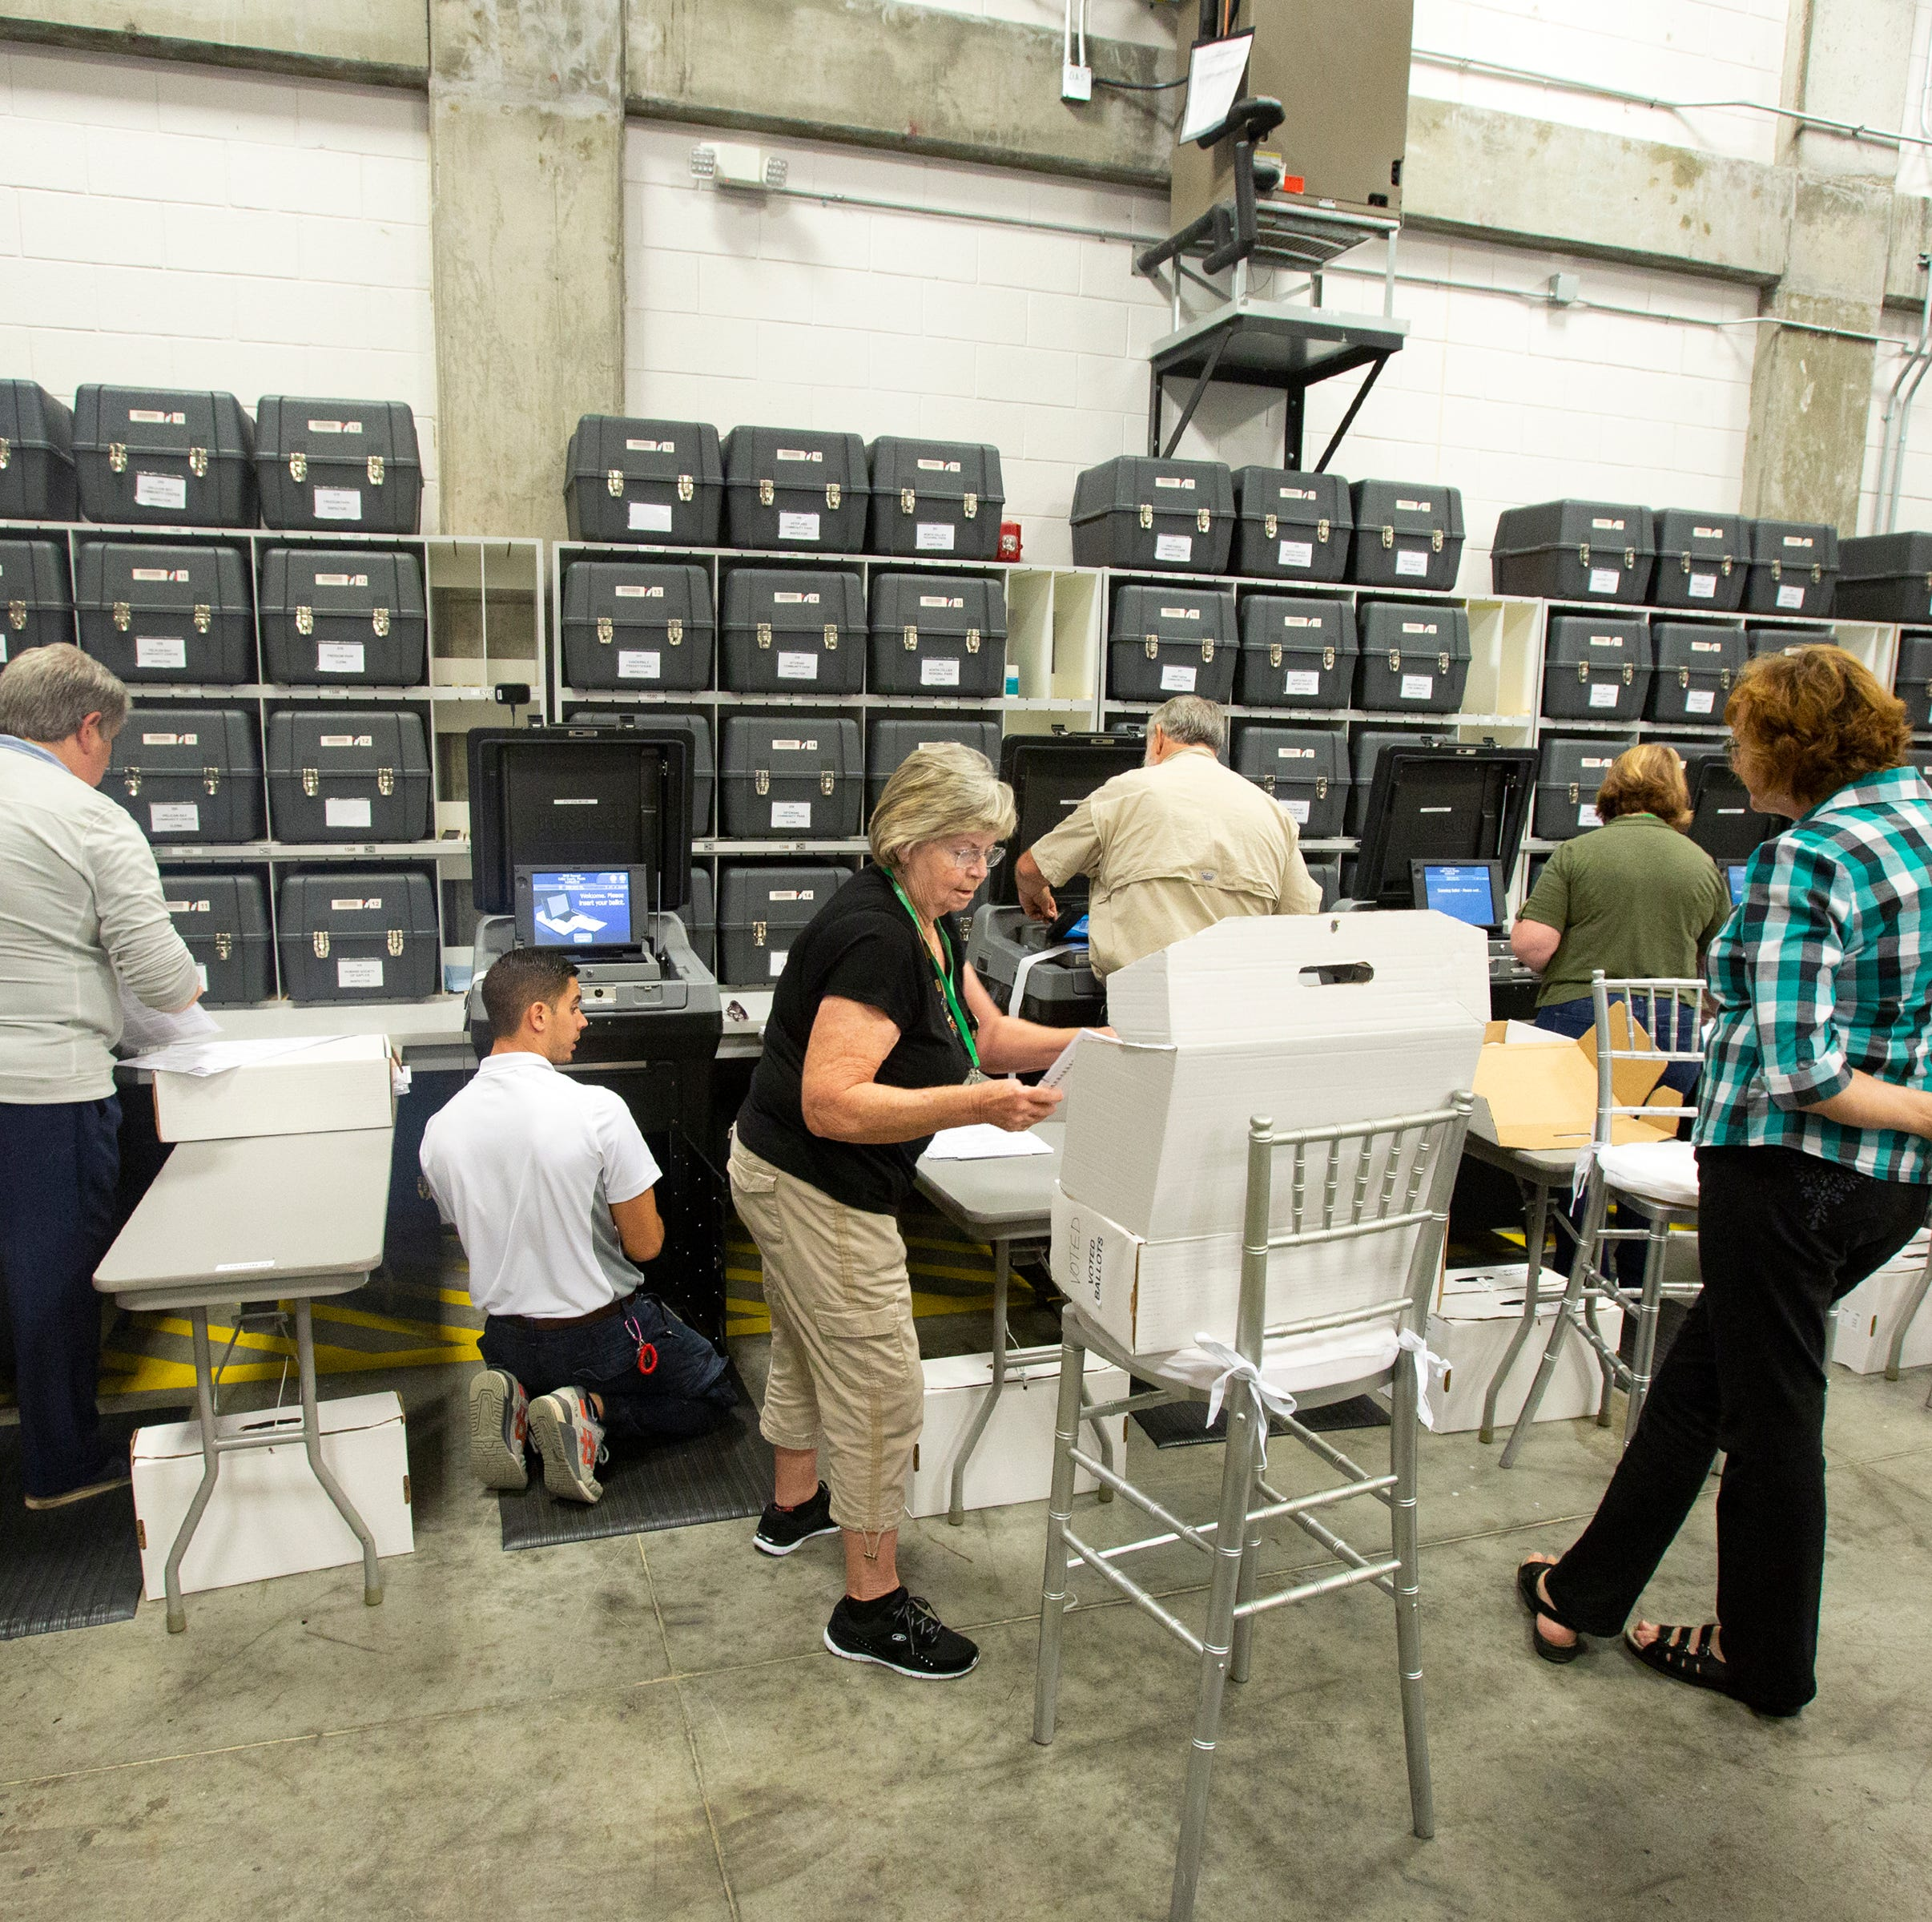 Elections workers process ballots during an election recount at the elections office on Enterprise Avenue Monday, Nov. 12, 2018 in Naples, Florida.